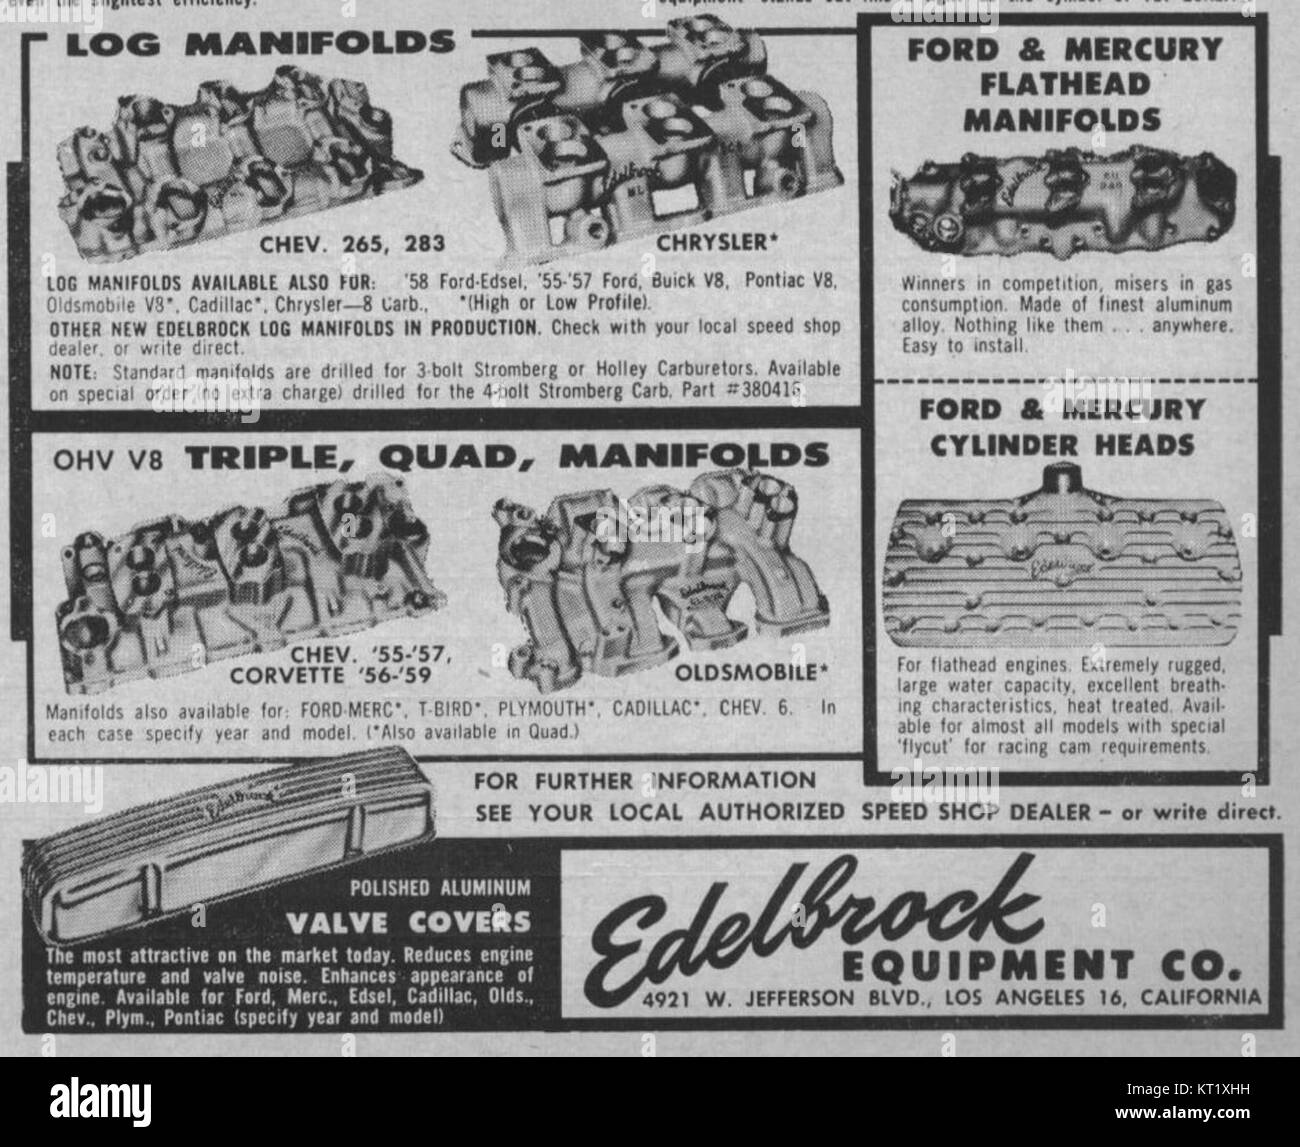 FE reference in Edlelbrock Ad 1958 Stock Photo: 169687885